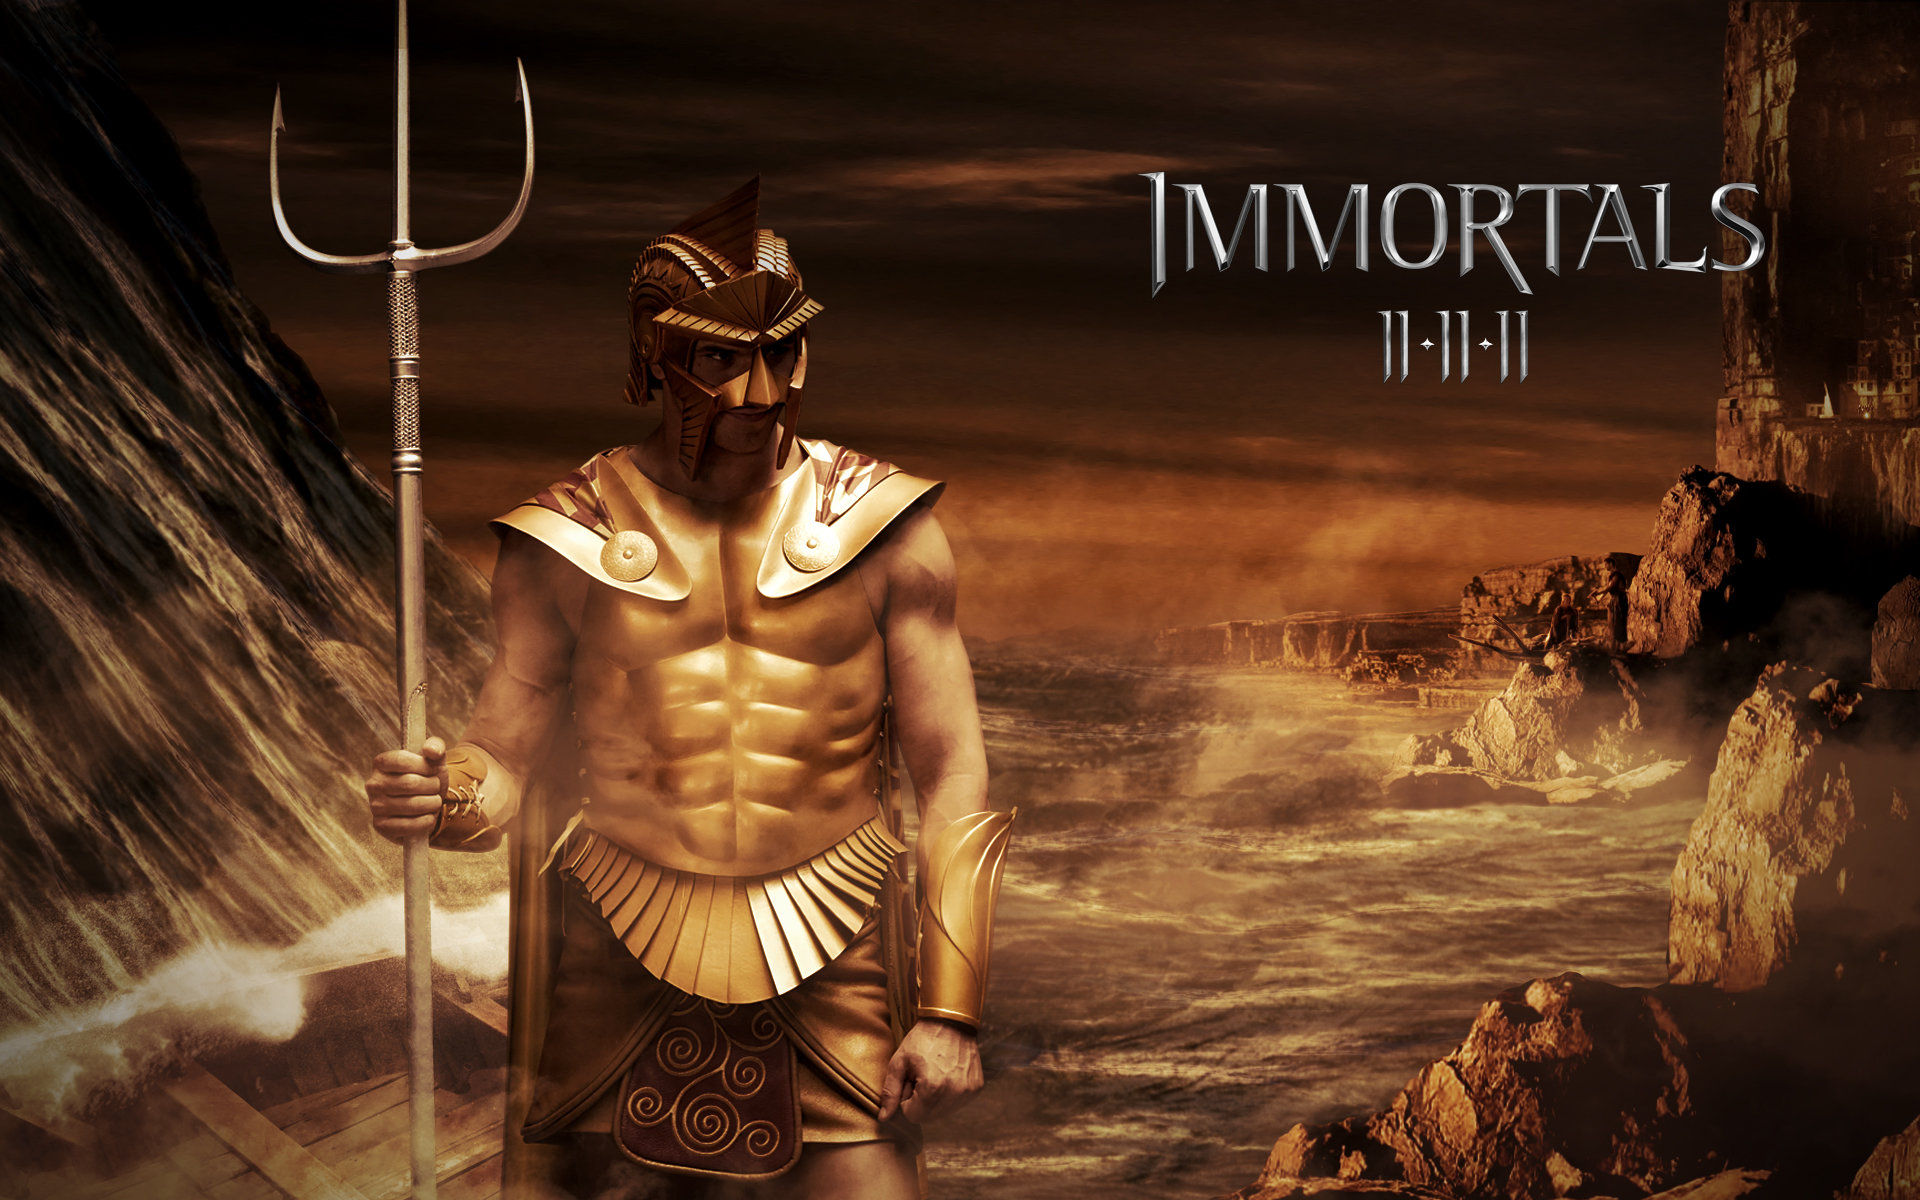 Free Download Immortals Wallpaper Id 156349 Hd 1920x1200 For Computer